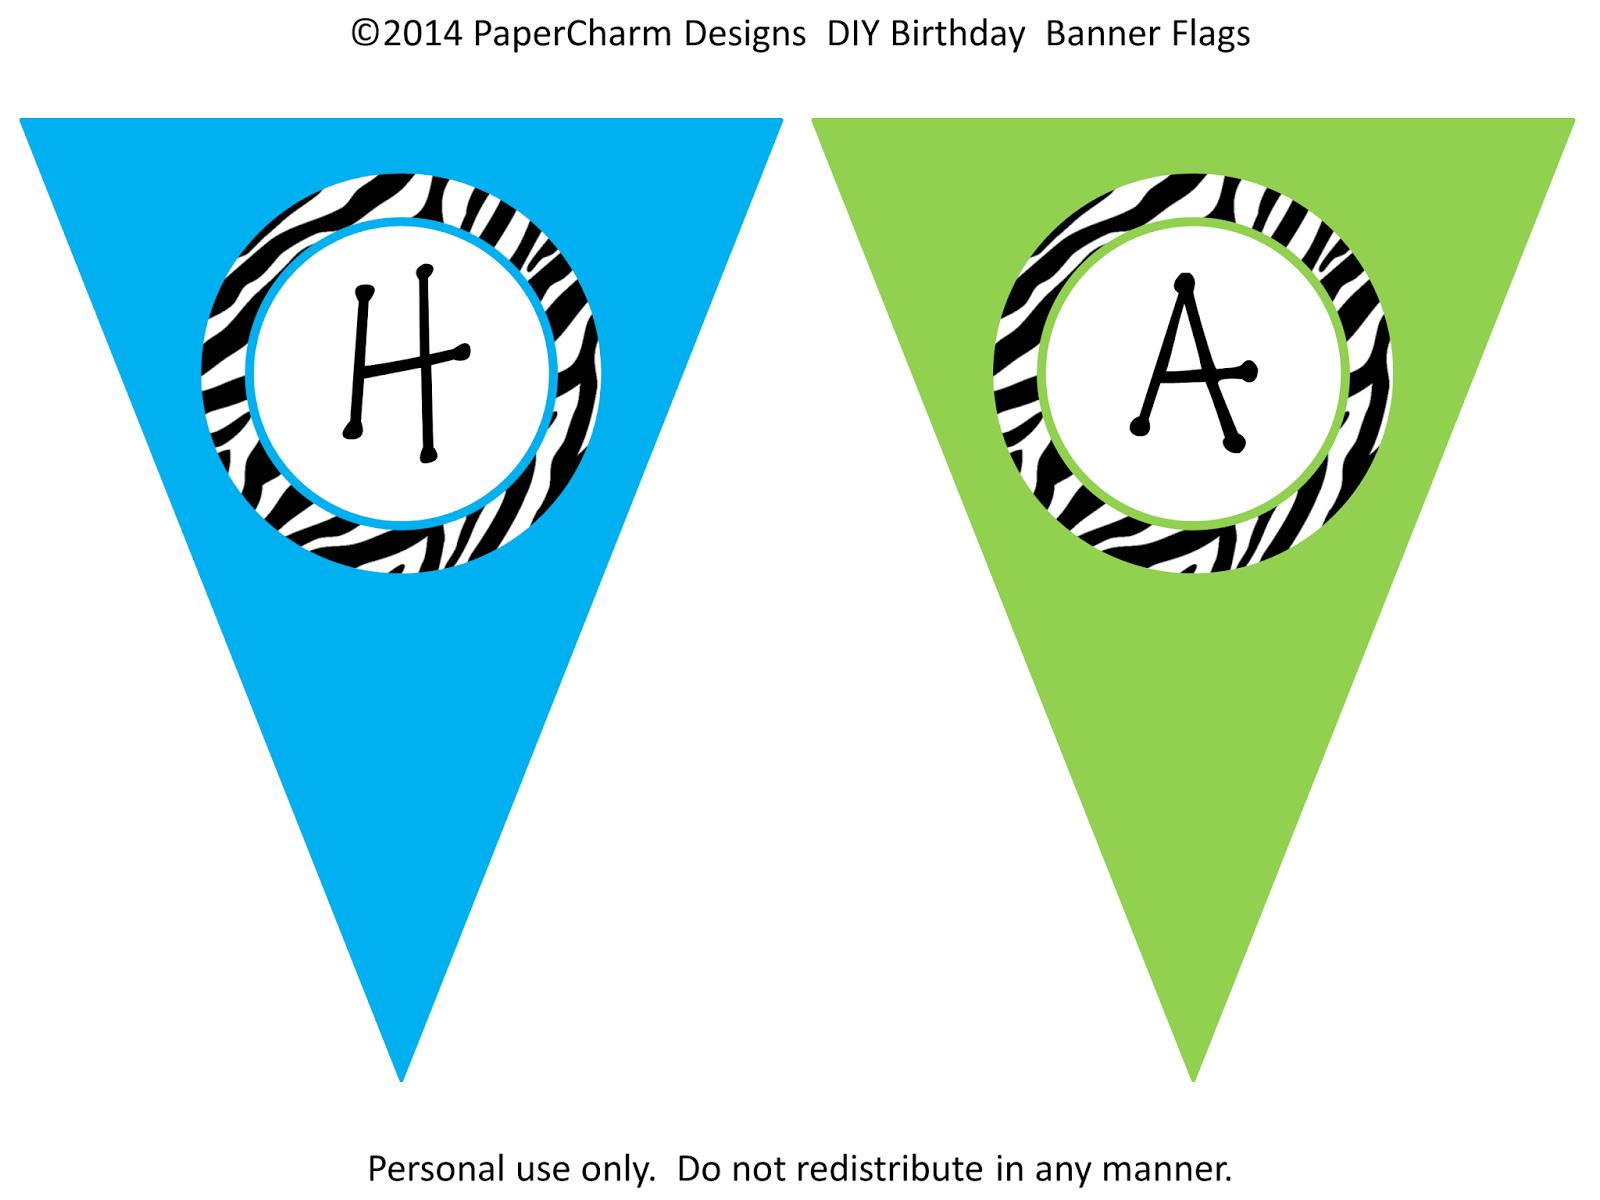 sample birthday banners designs ; BLUE+AND+GREEN+ZEBRA+DIY+BIRTHDAY+BANNER+SAMPLE